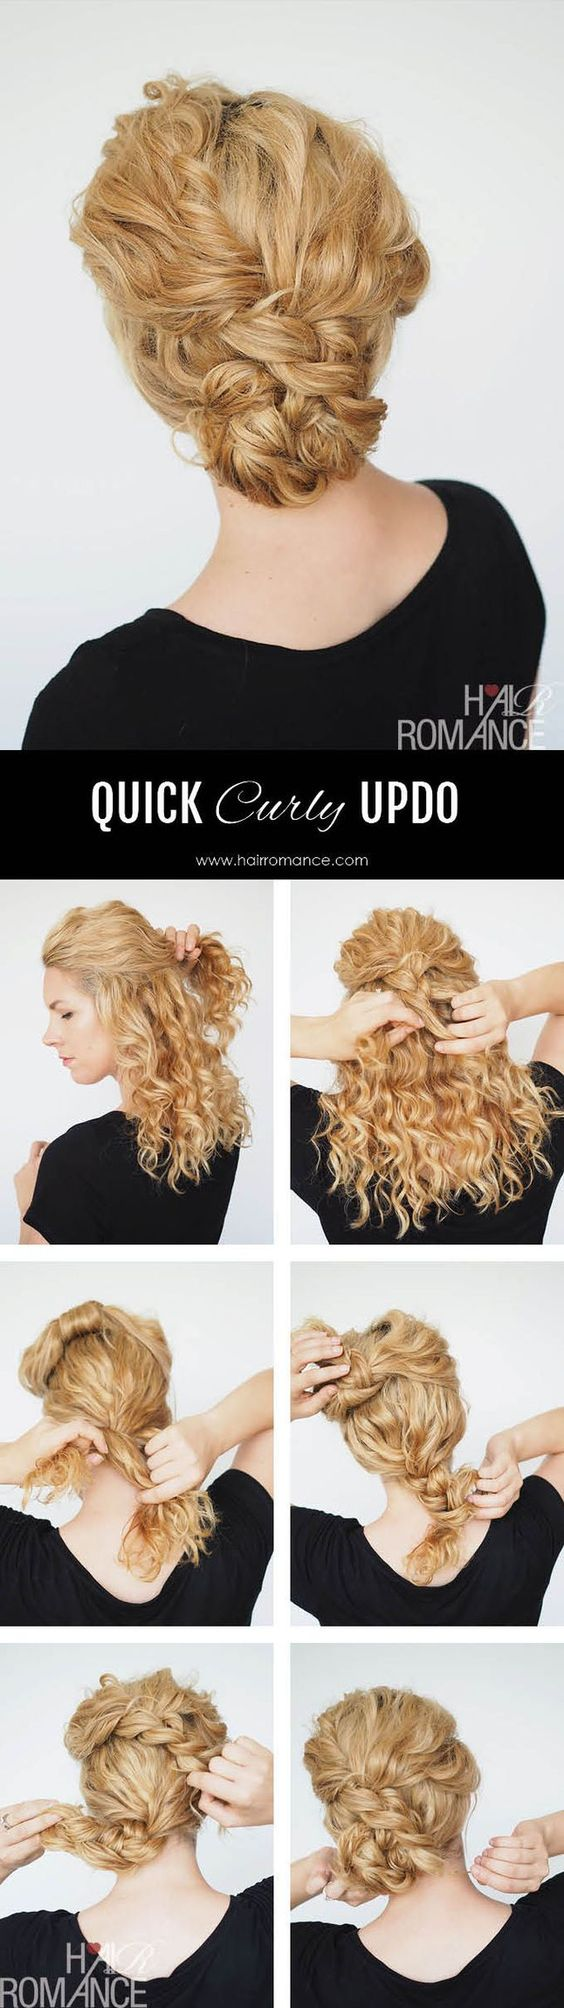 Quick Updo For Natural Curly Hair Pretty Designs